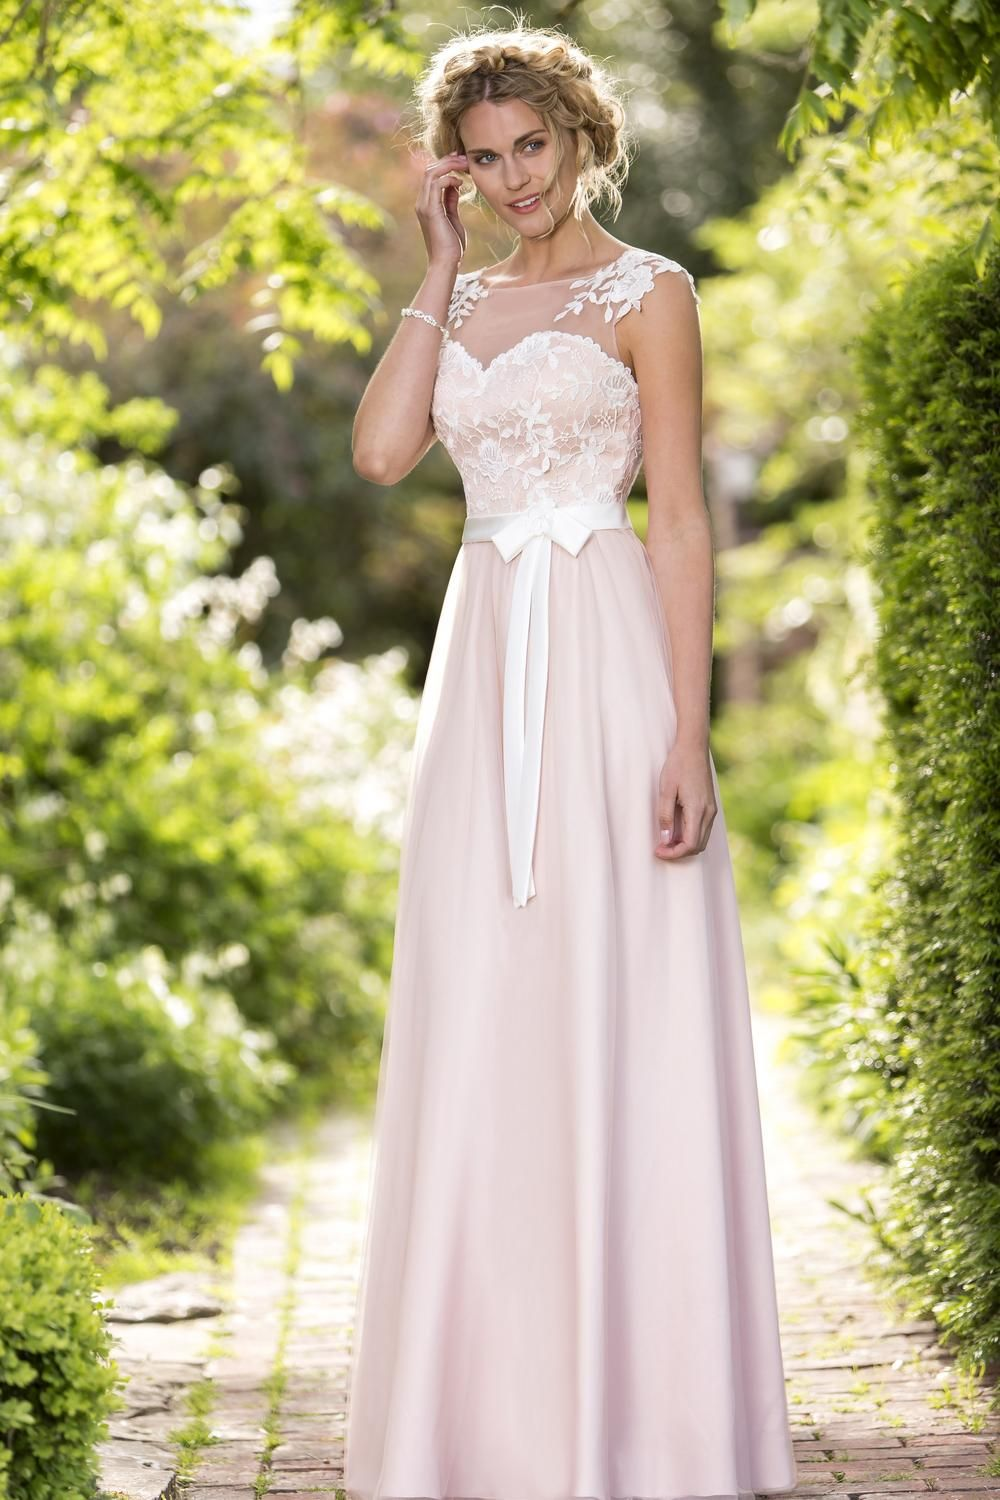 Light pink long bridesmaid dressesbridesmaid dressesdressesss light pink long bridesmaid dresses ombrellifo Image collections